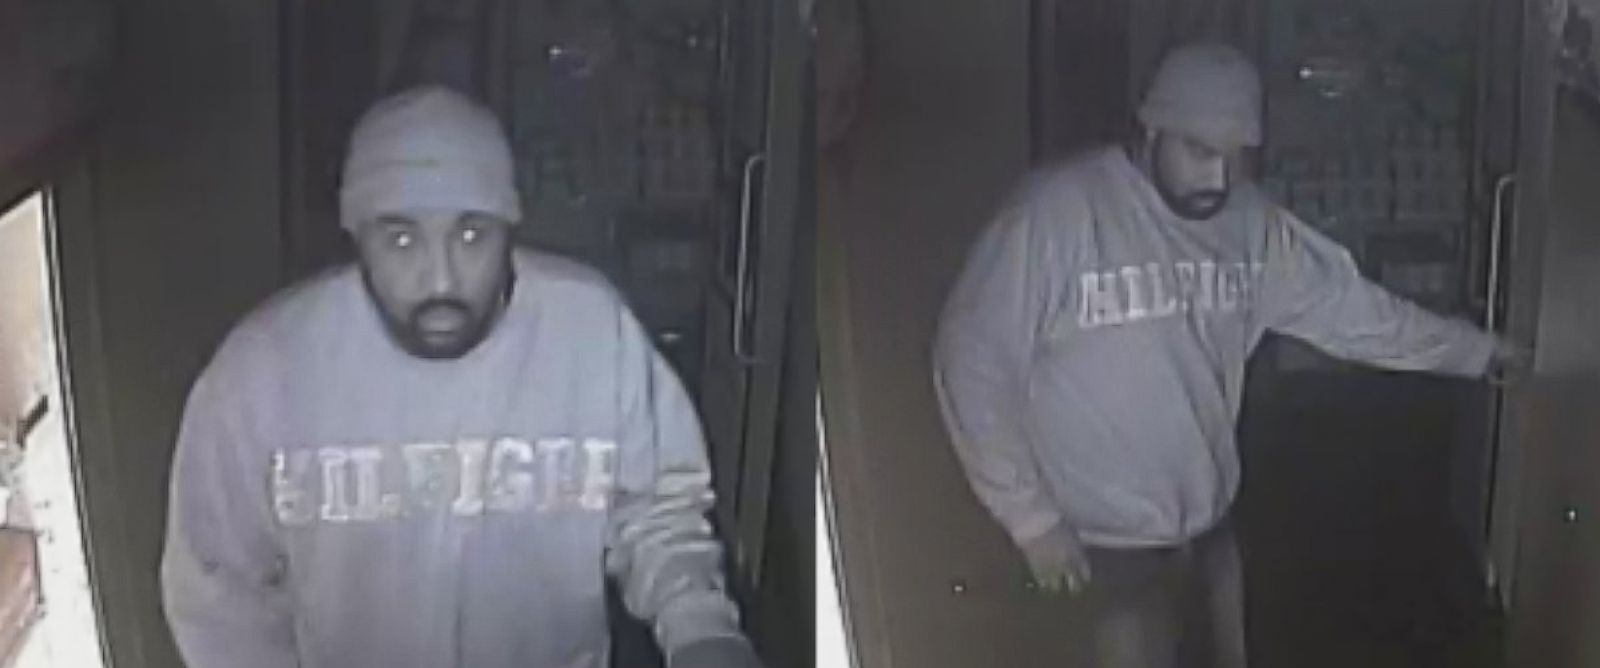 PHOTO: Jacksonville Sheriffs Office posted these photos to their Facebook on Jan. 27, 2015 of a suspect sought for burglary.